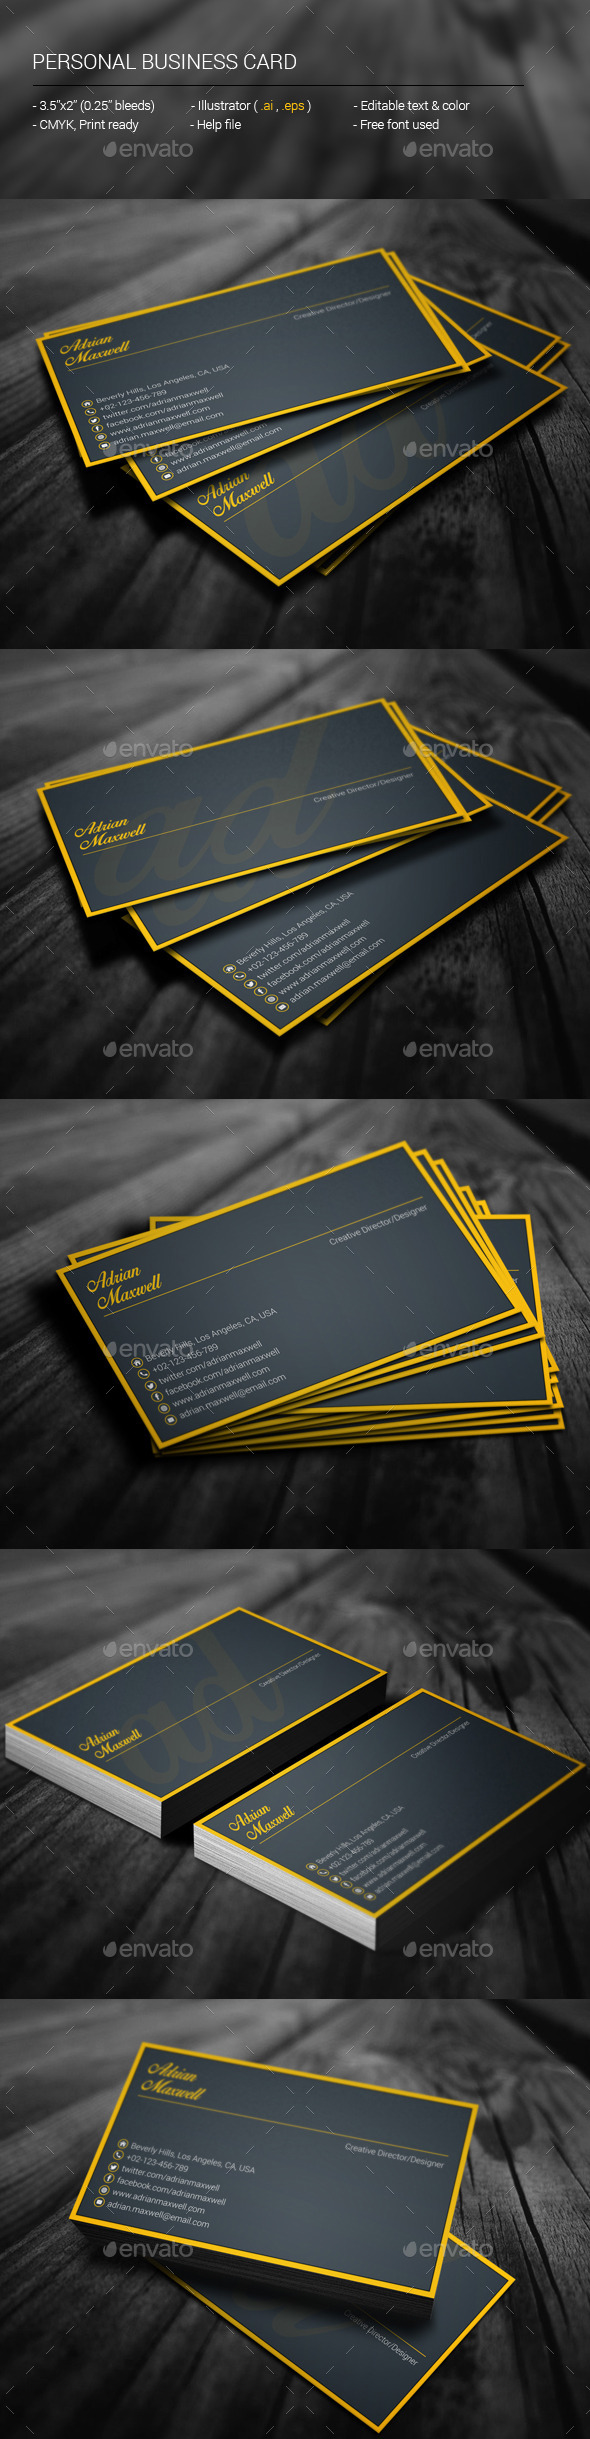 GraphicRiver Personal Business Card 11274559